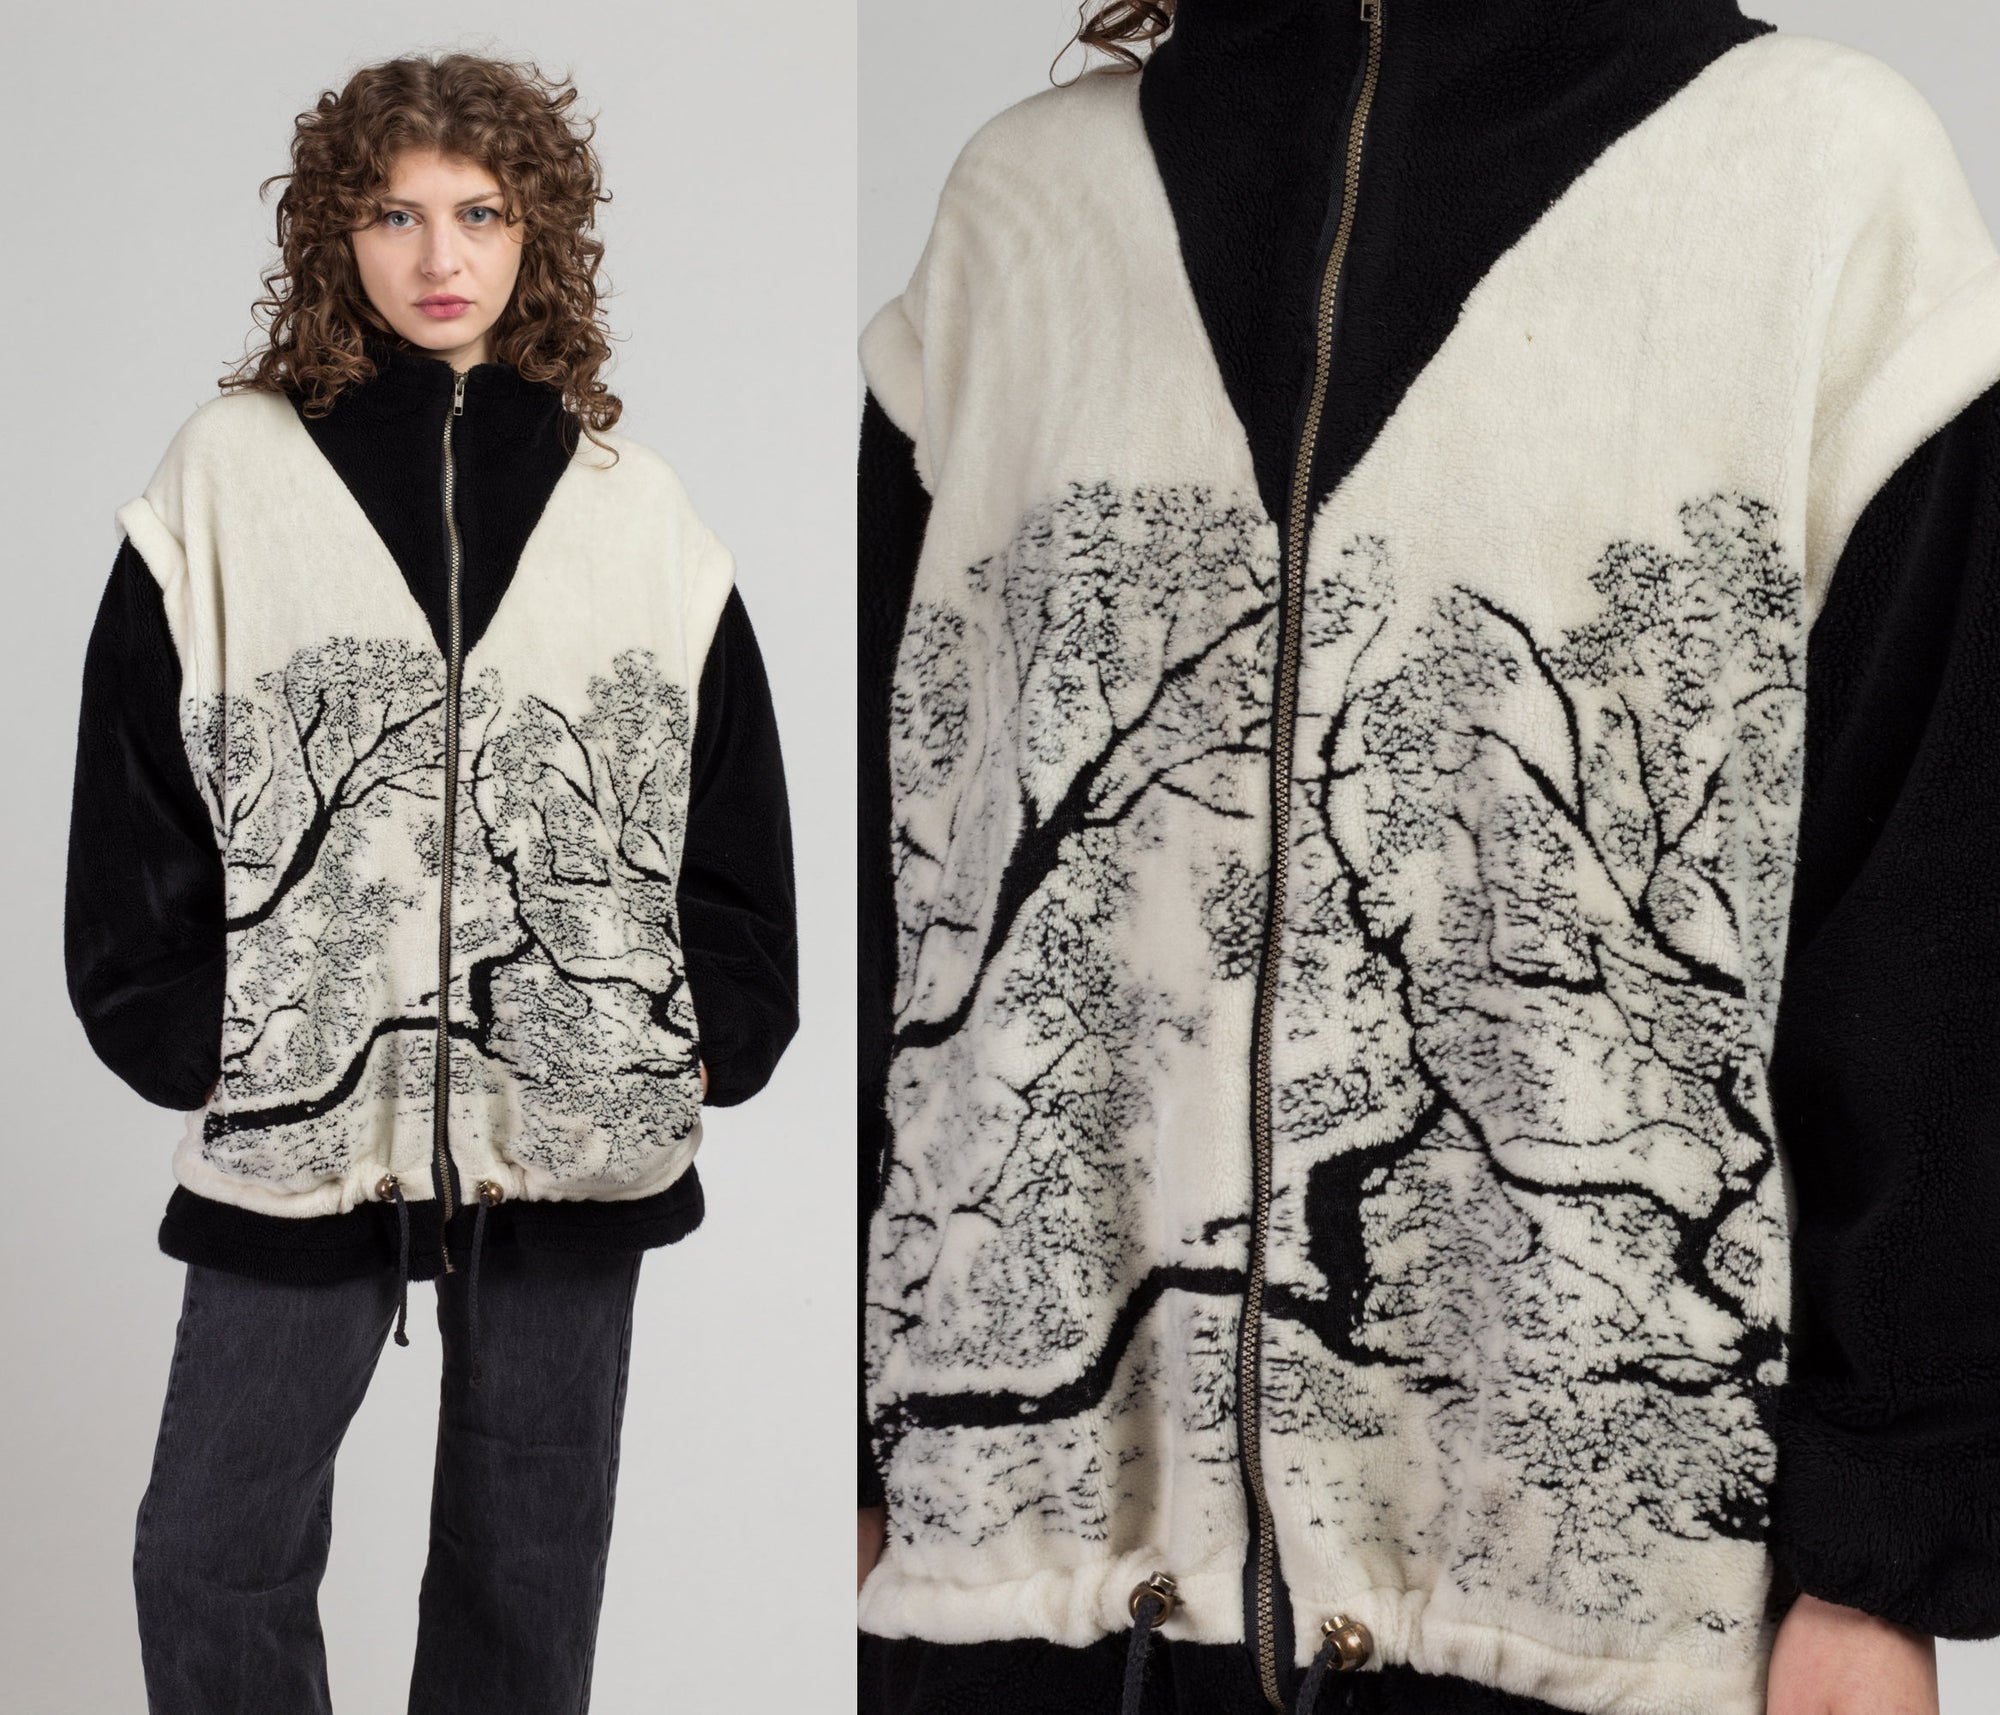 90s Fleece Tree Print Jacket - Extra Large | Vintage Zip Up Oversize Soft Sweatshirt